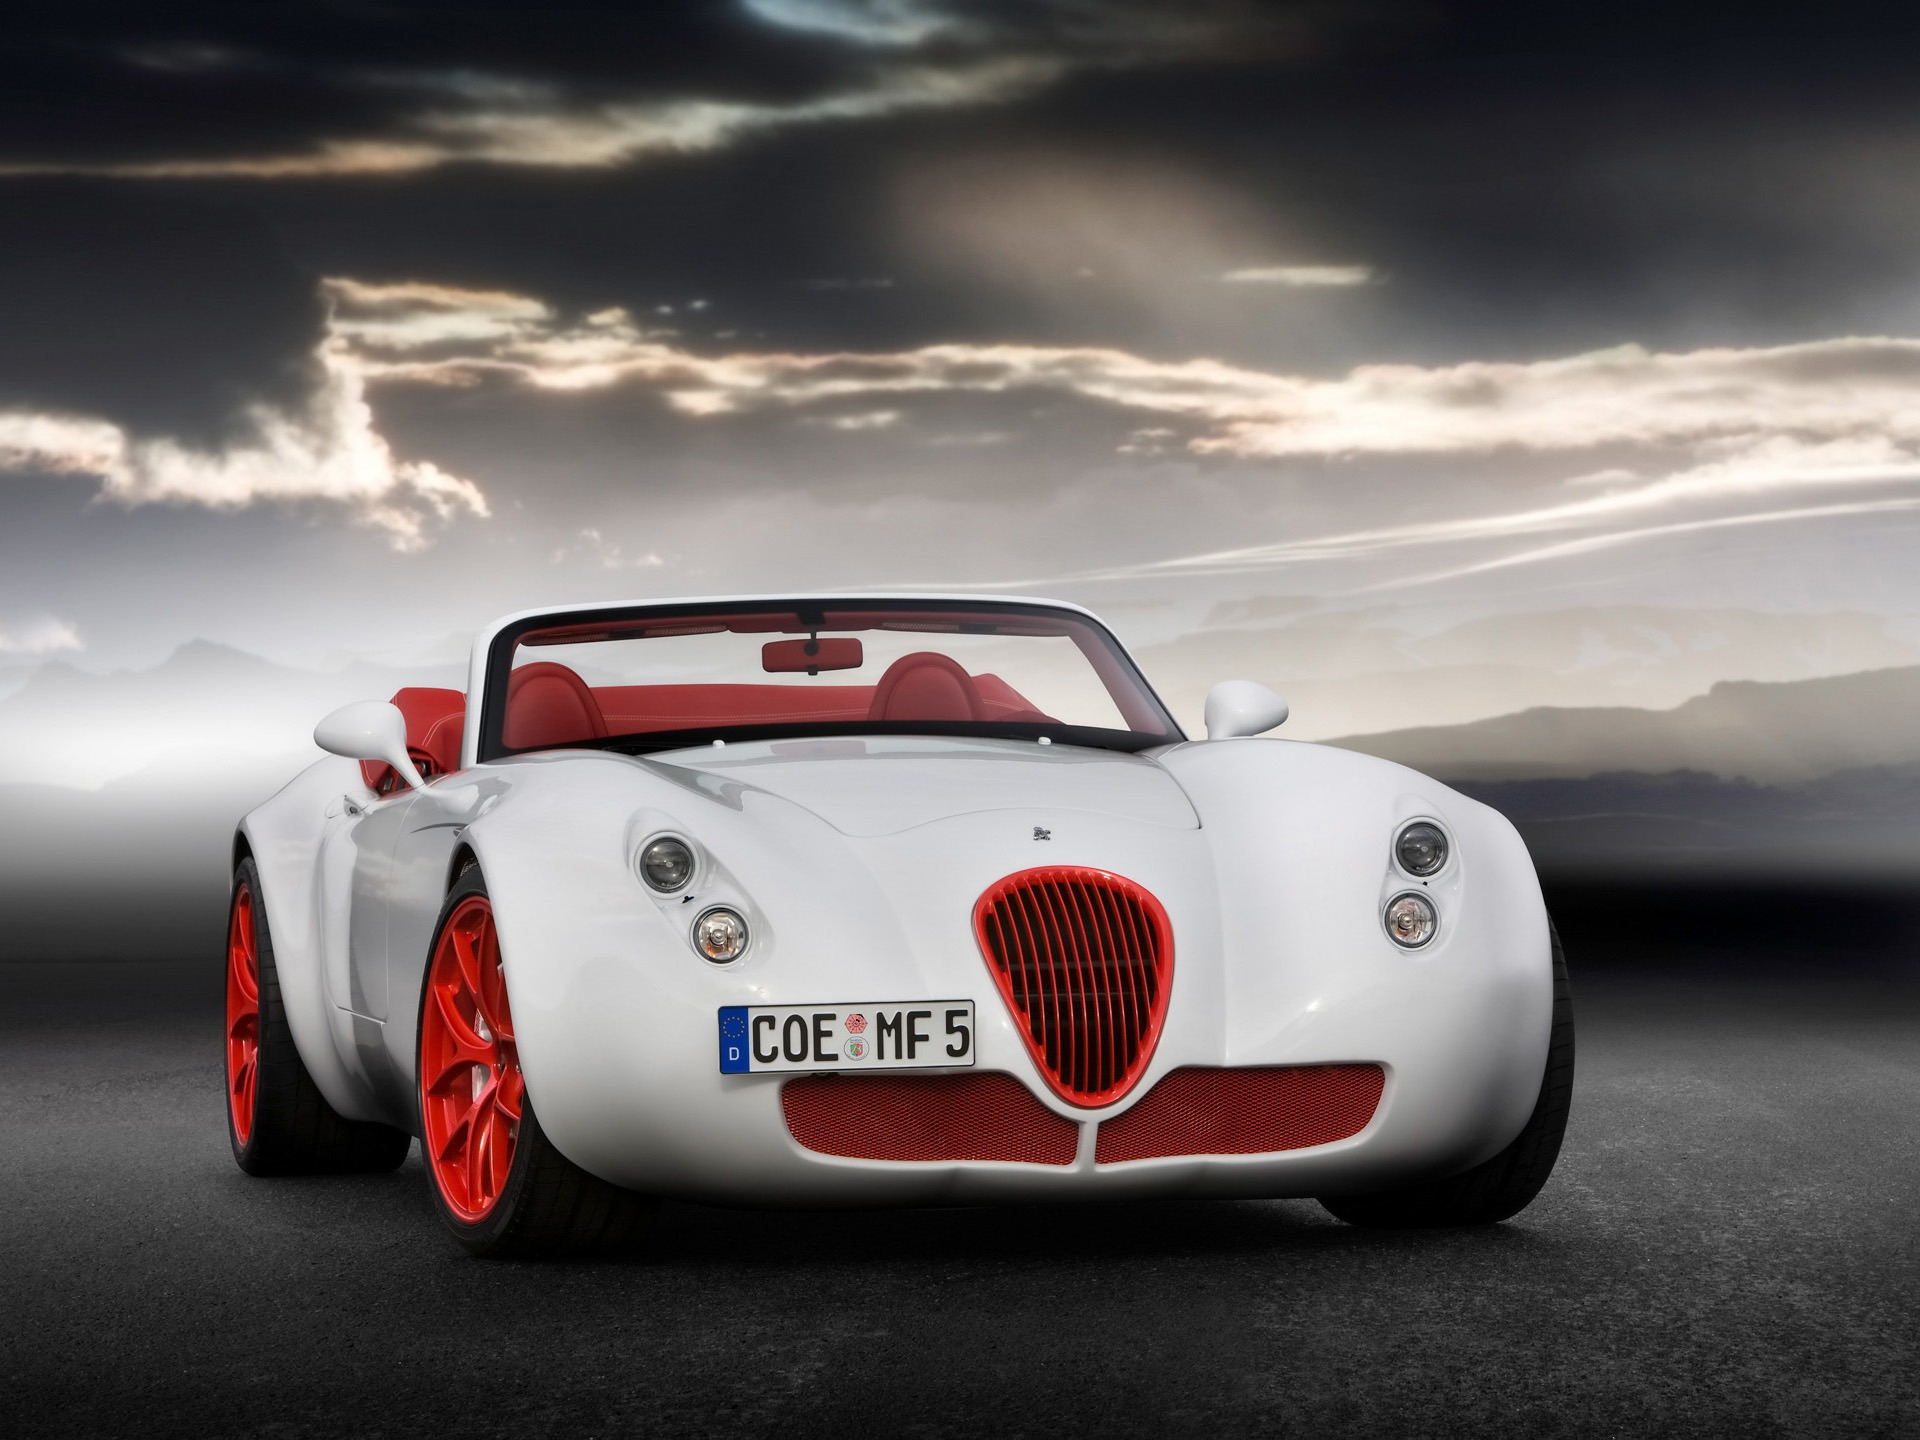 1920x1440 - Wiesmann GT MF5 Wallpapers 15